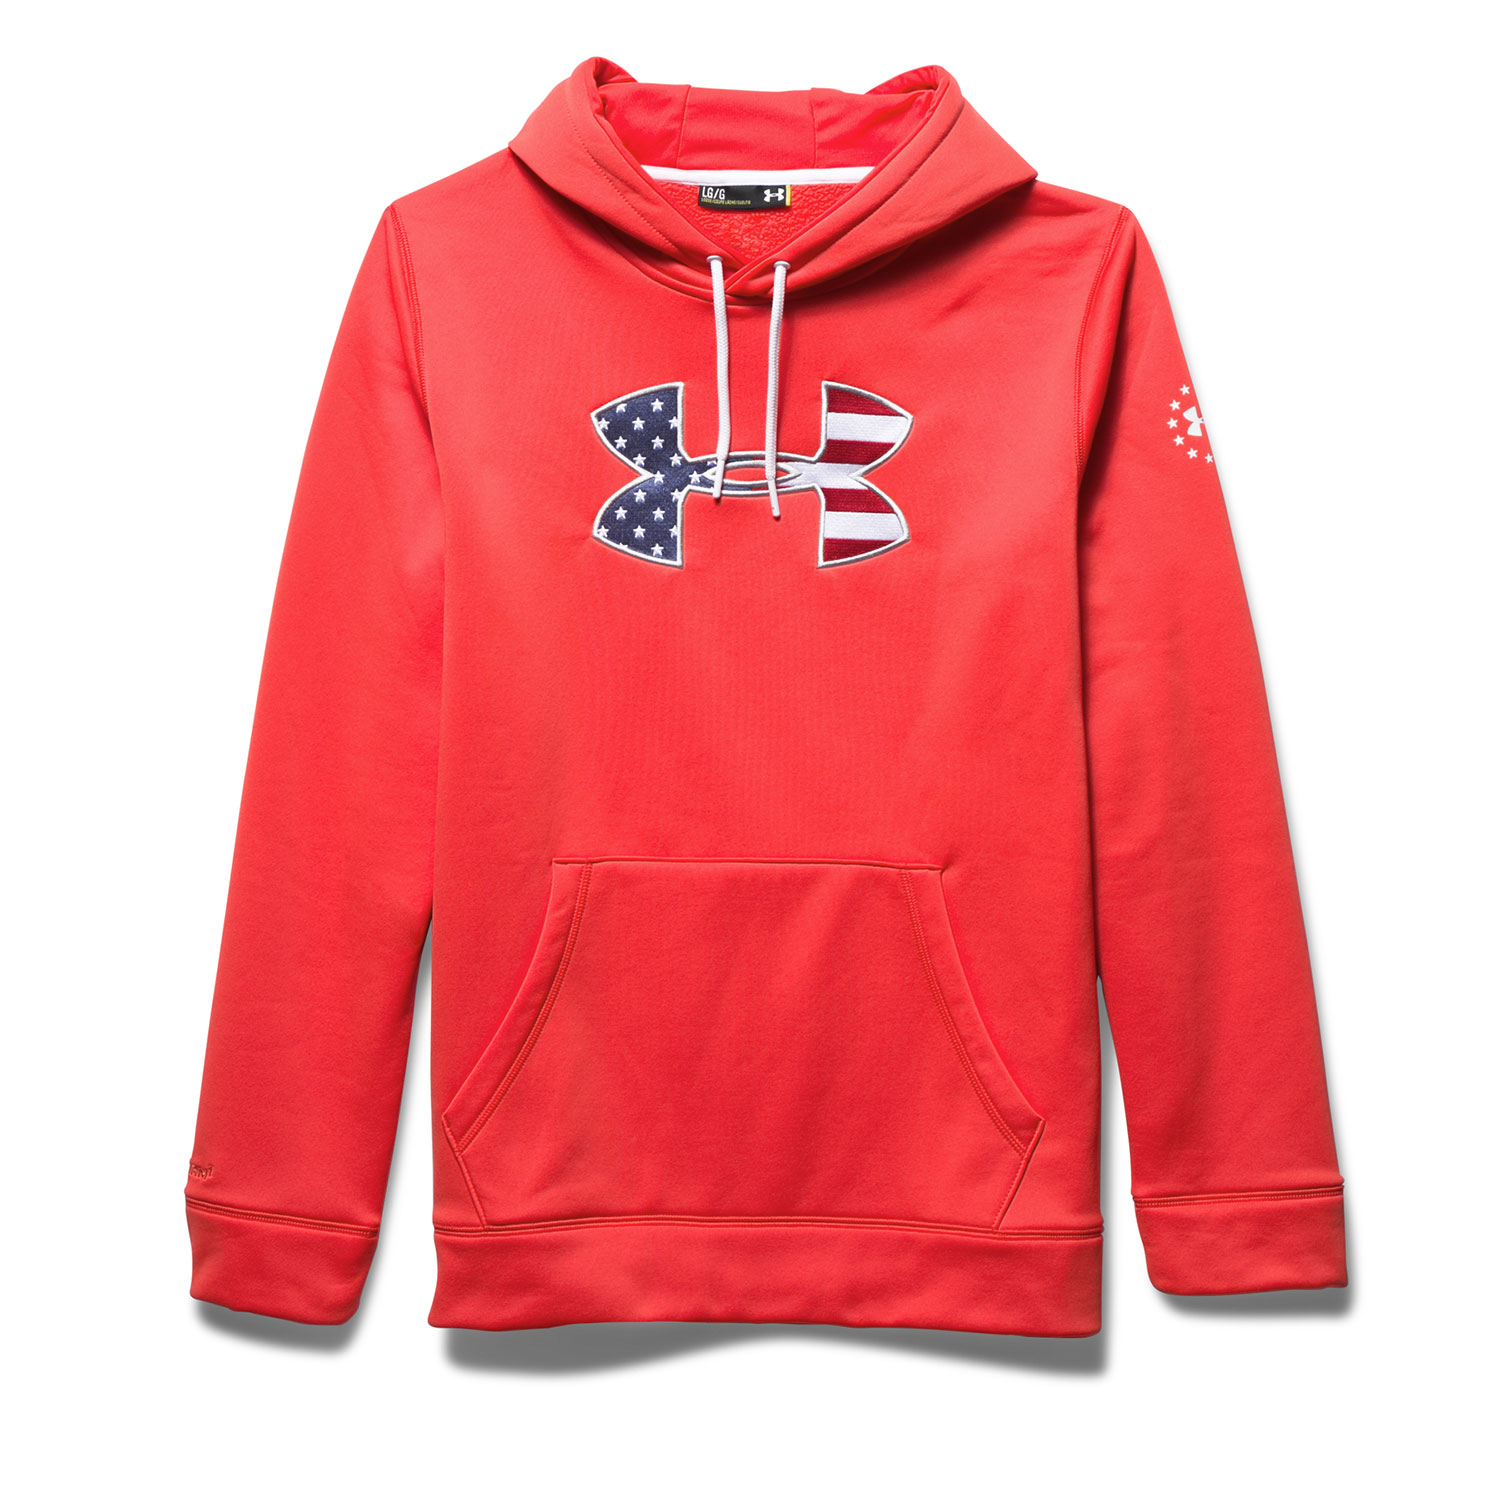 Under Armour Storm Armour Freedom Fleece Hoodie